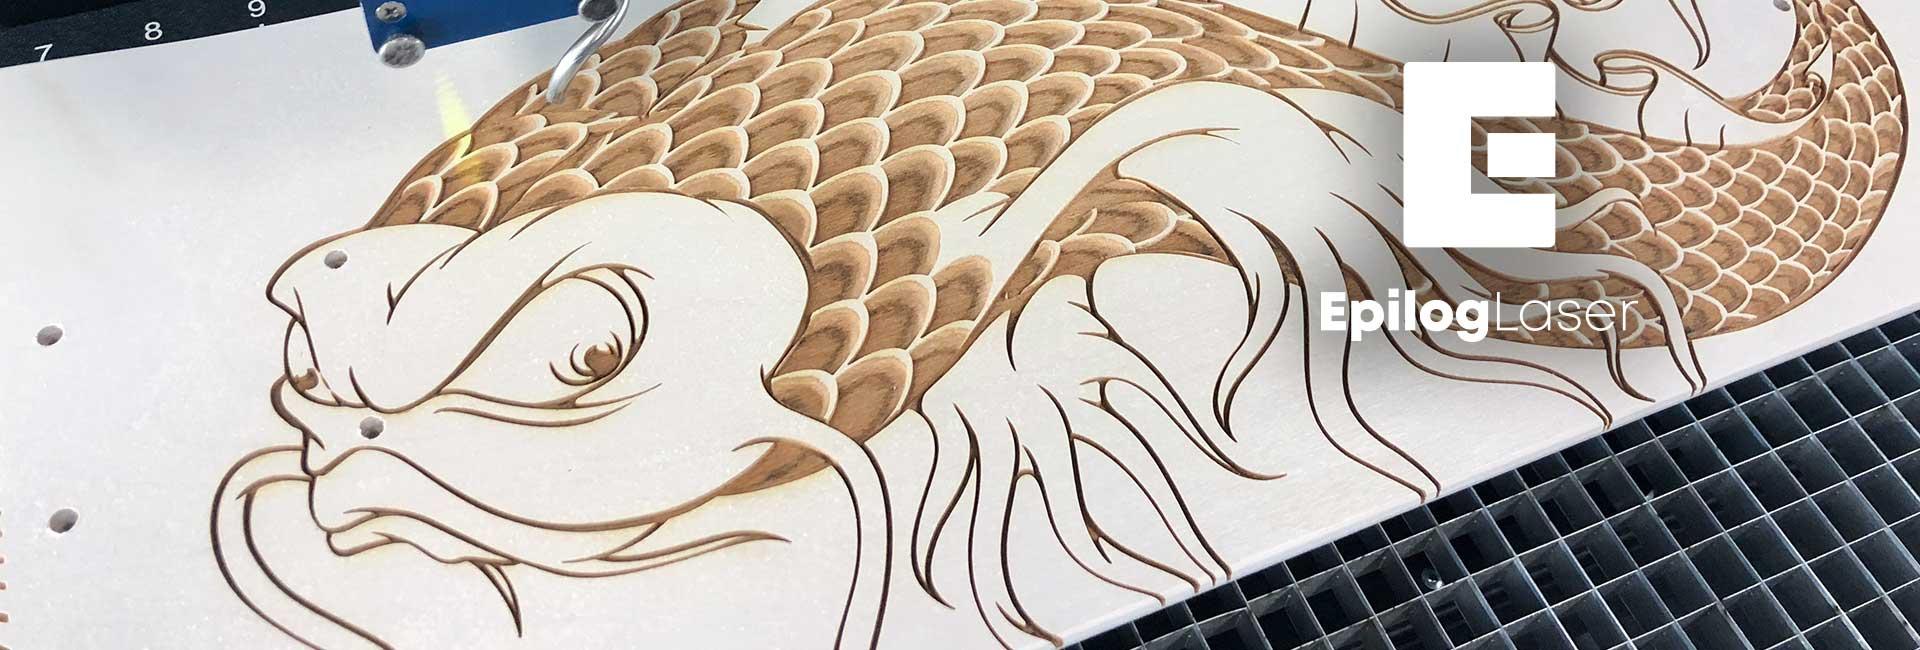 laser engraved 3D relief skateboard nose to tail 4 inch lens